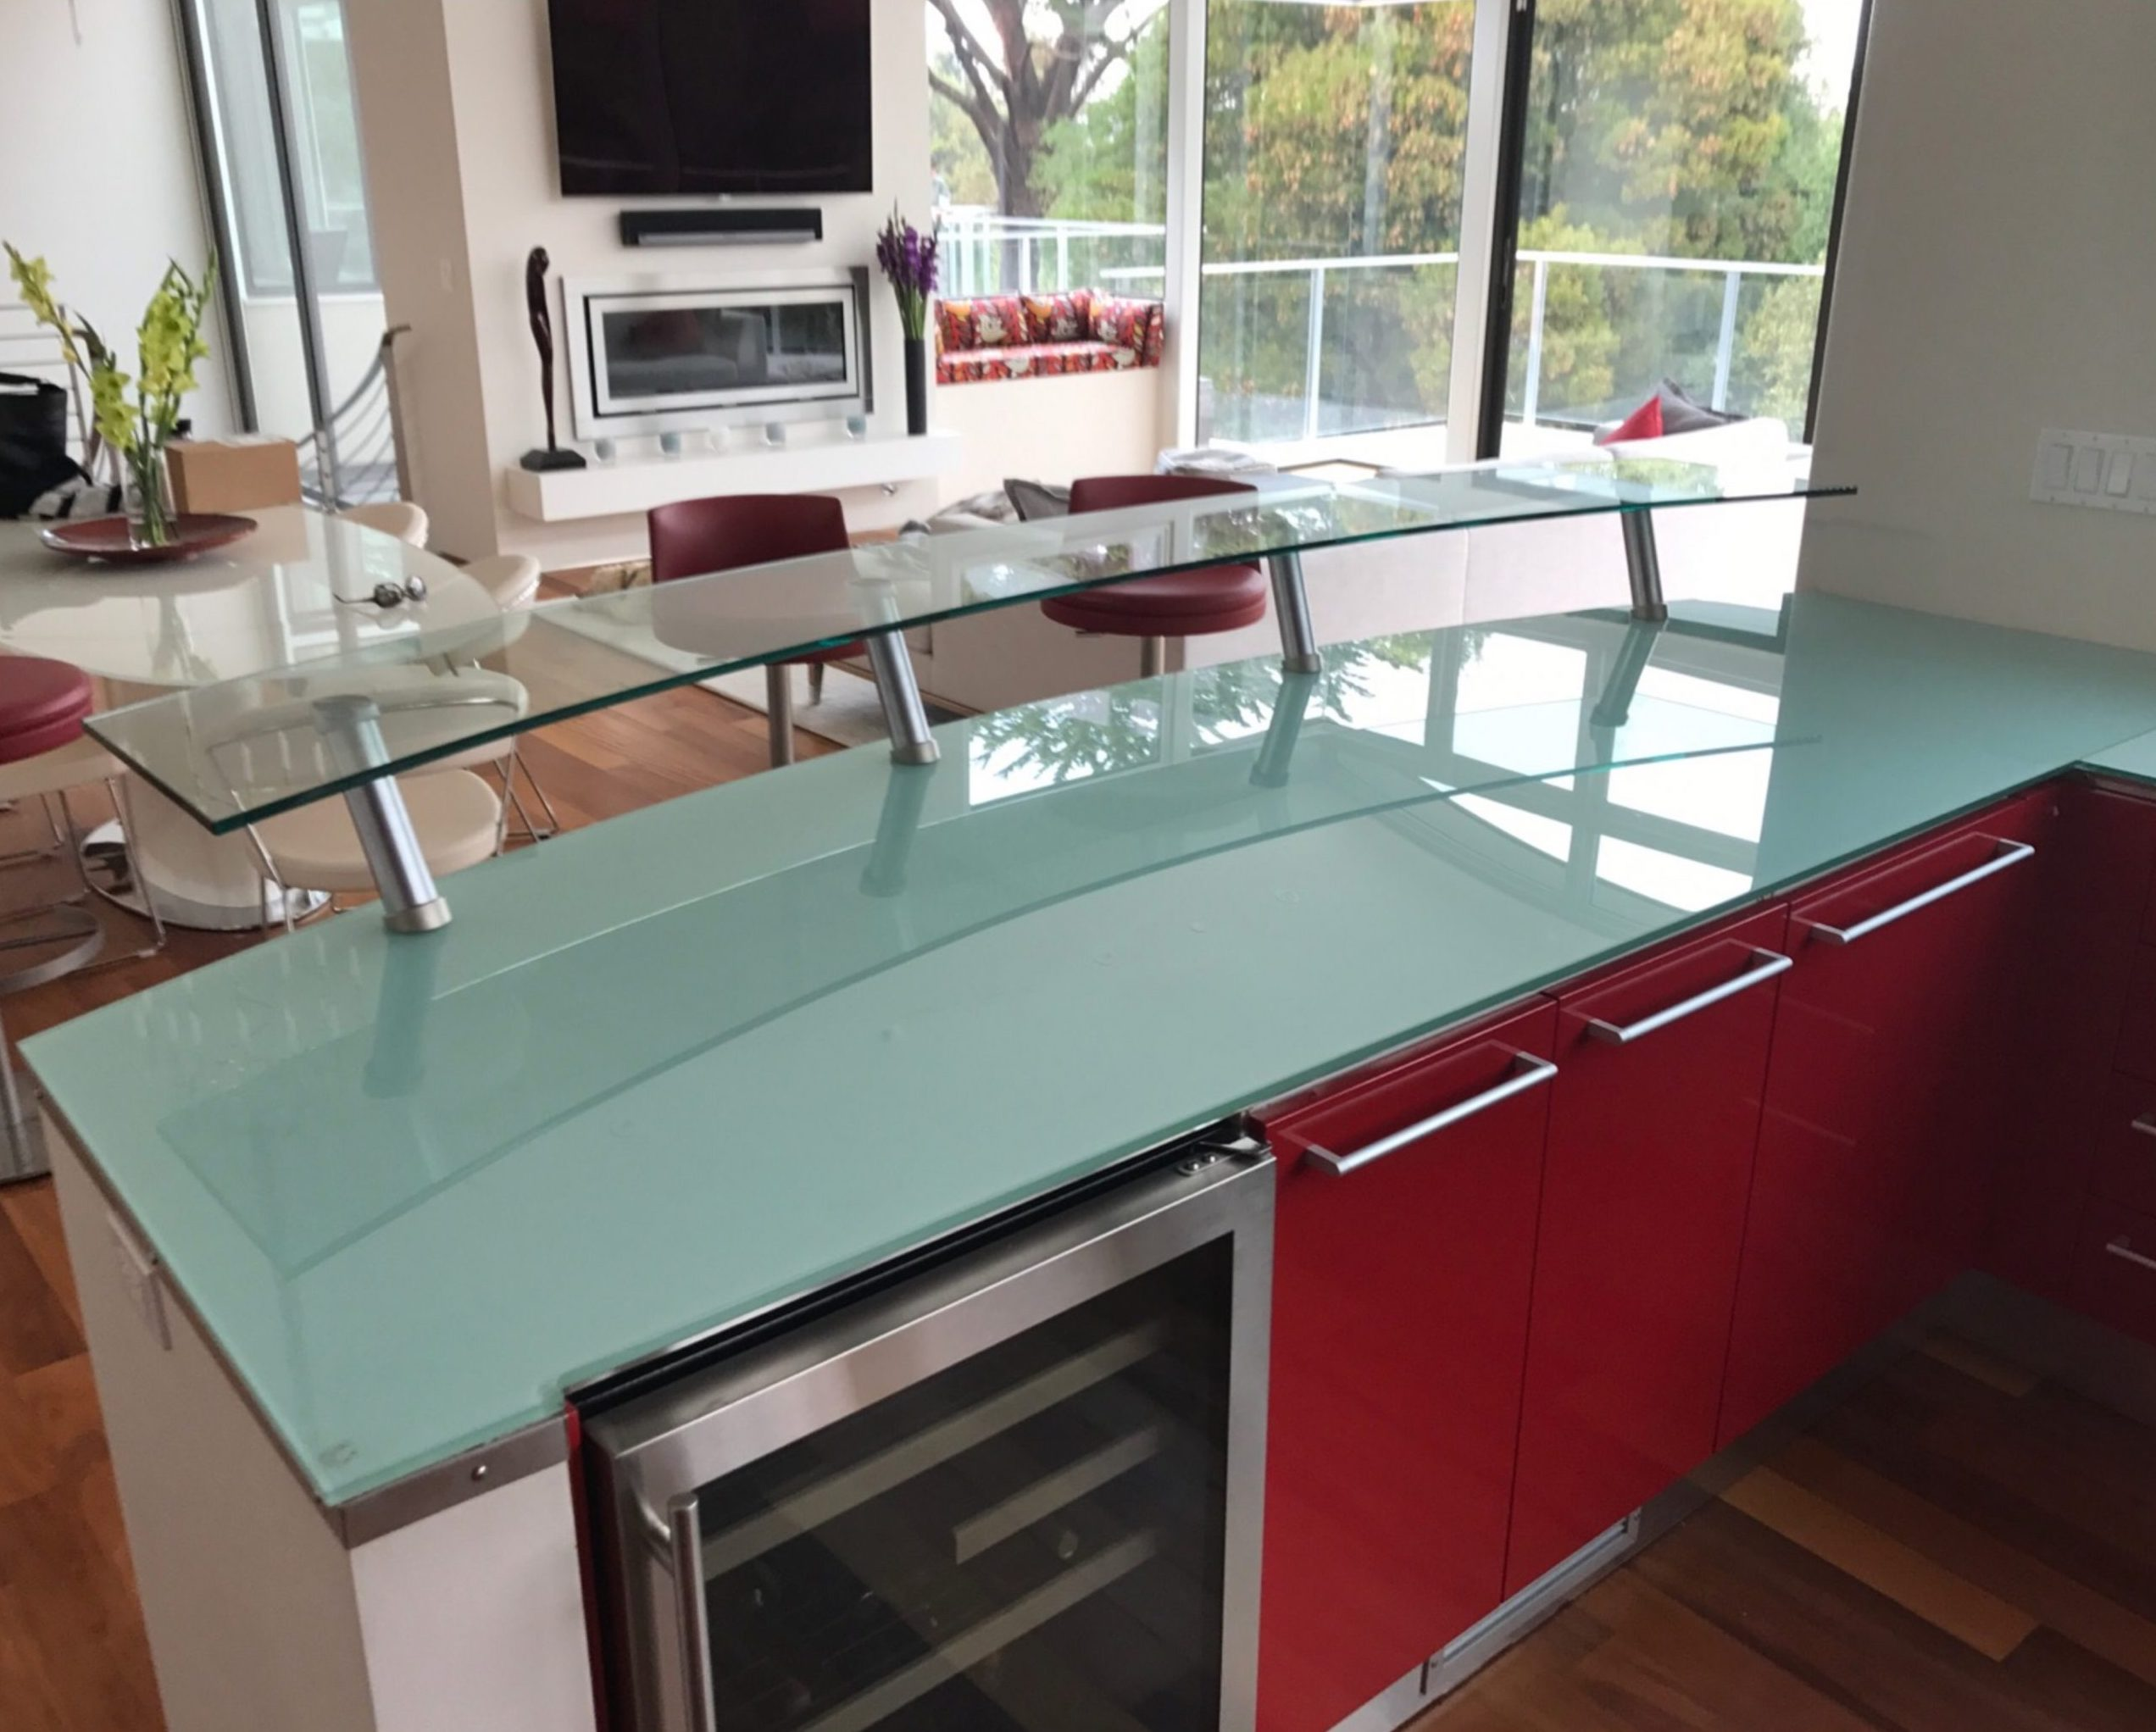 Backpainted Glass Countertop with Glass Breakfast Bar on Stand-offs